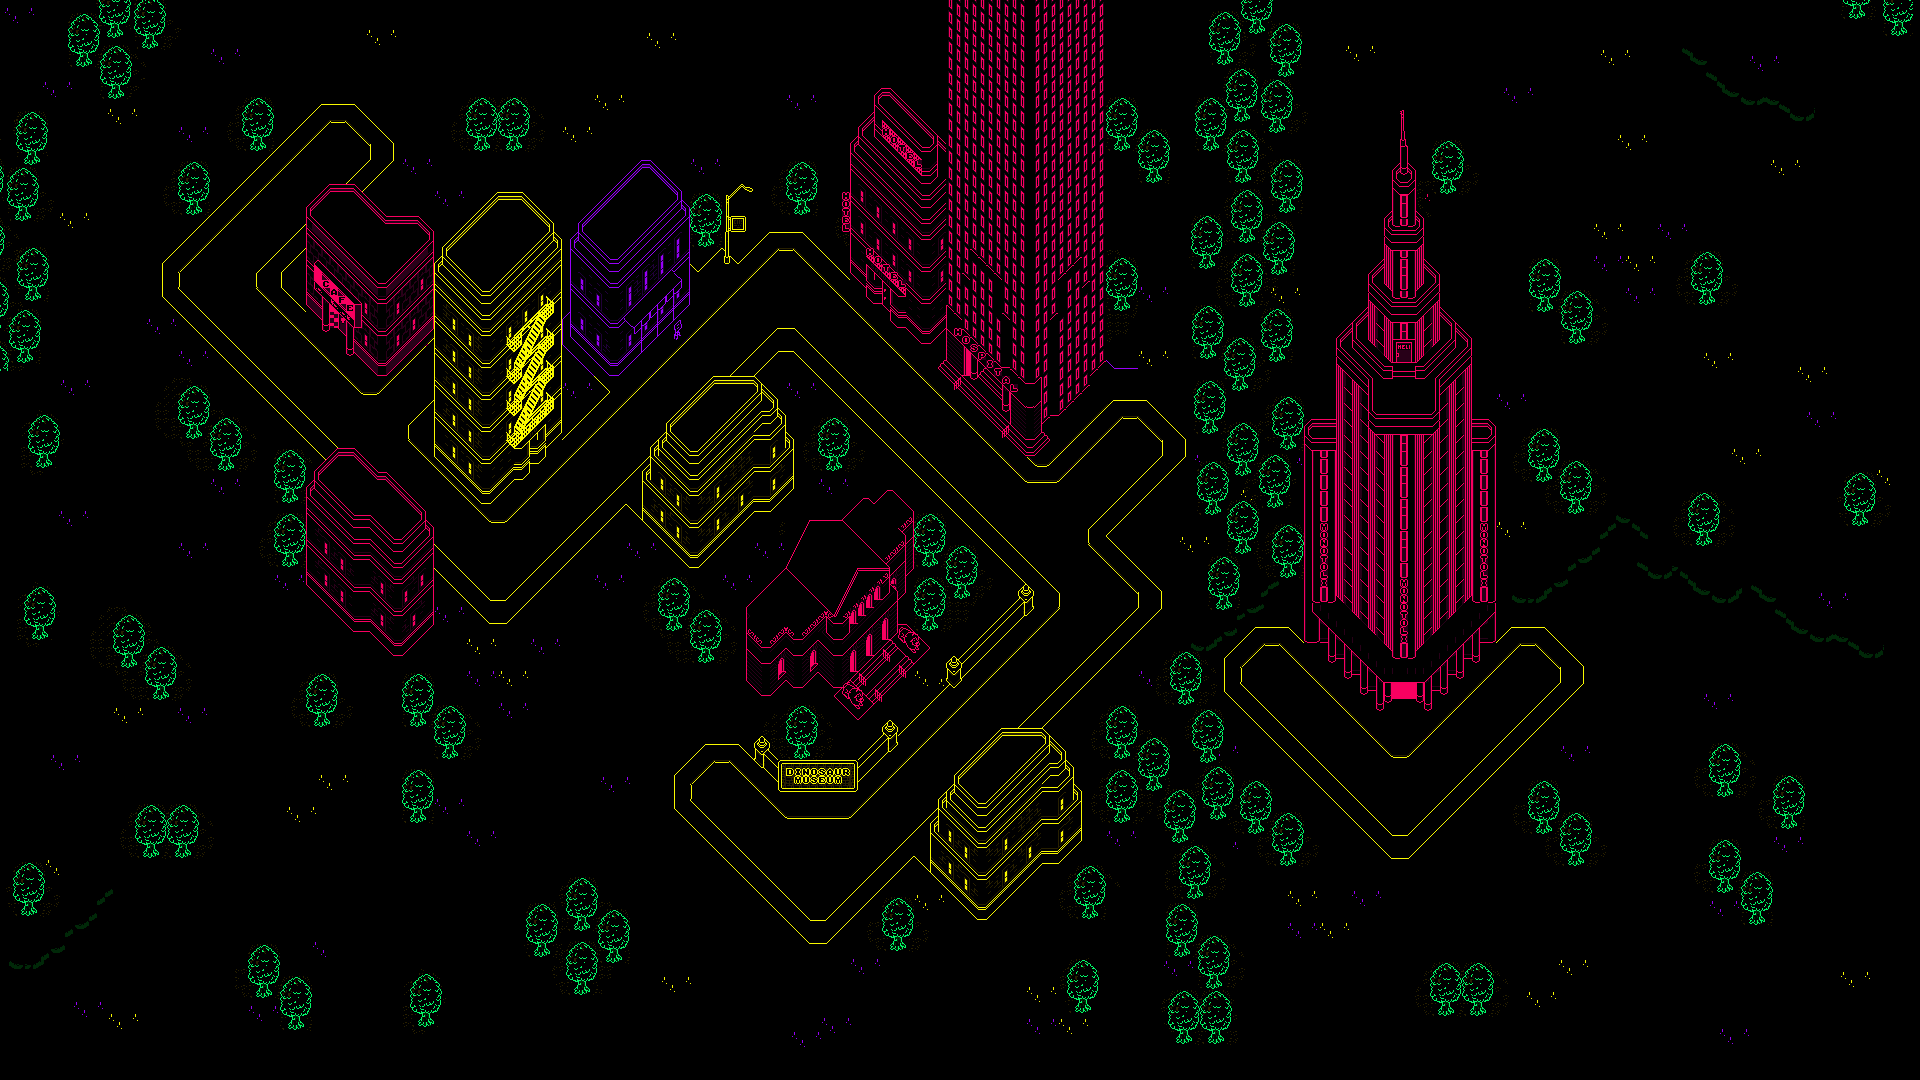 I made a 1920x1080 version of Moonside   Imgur 1920x1080